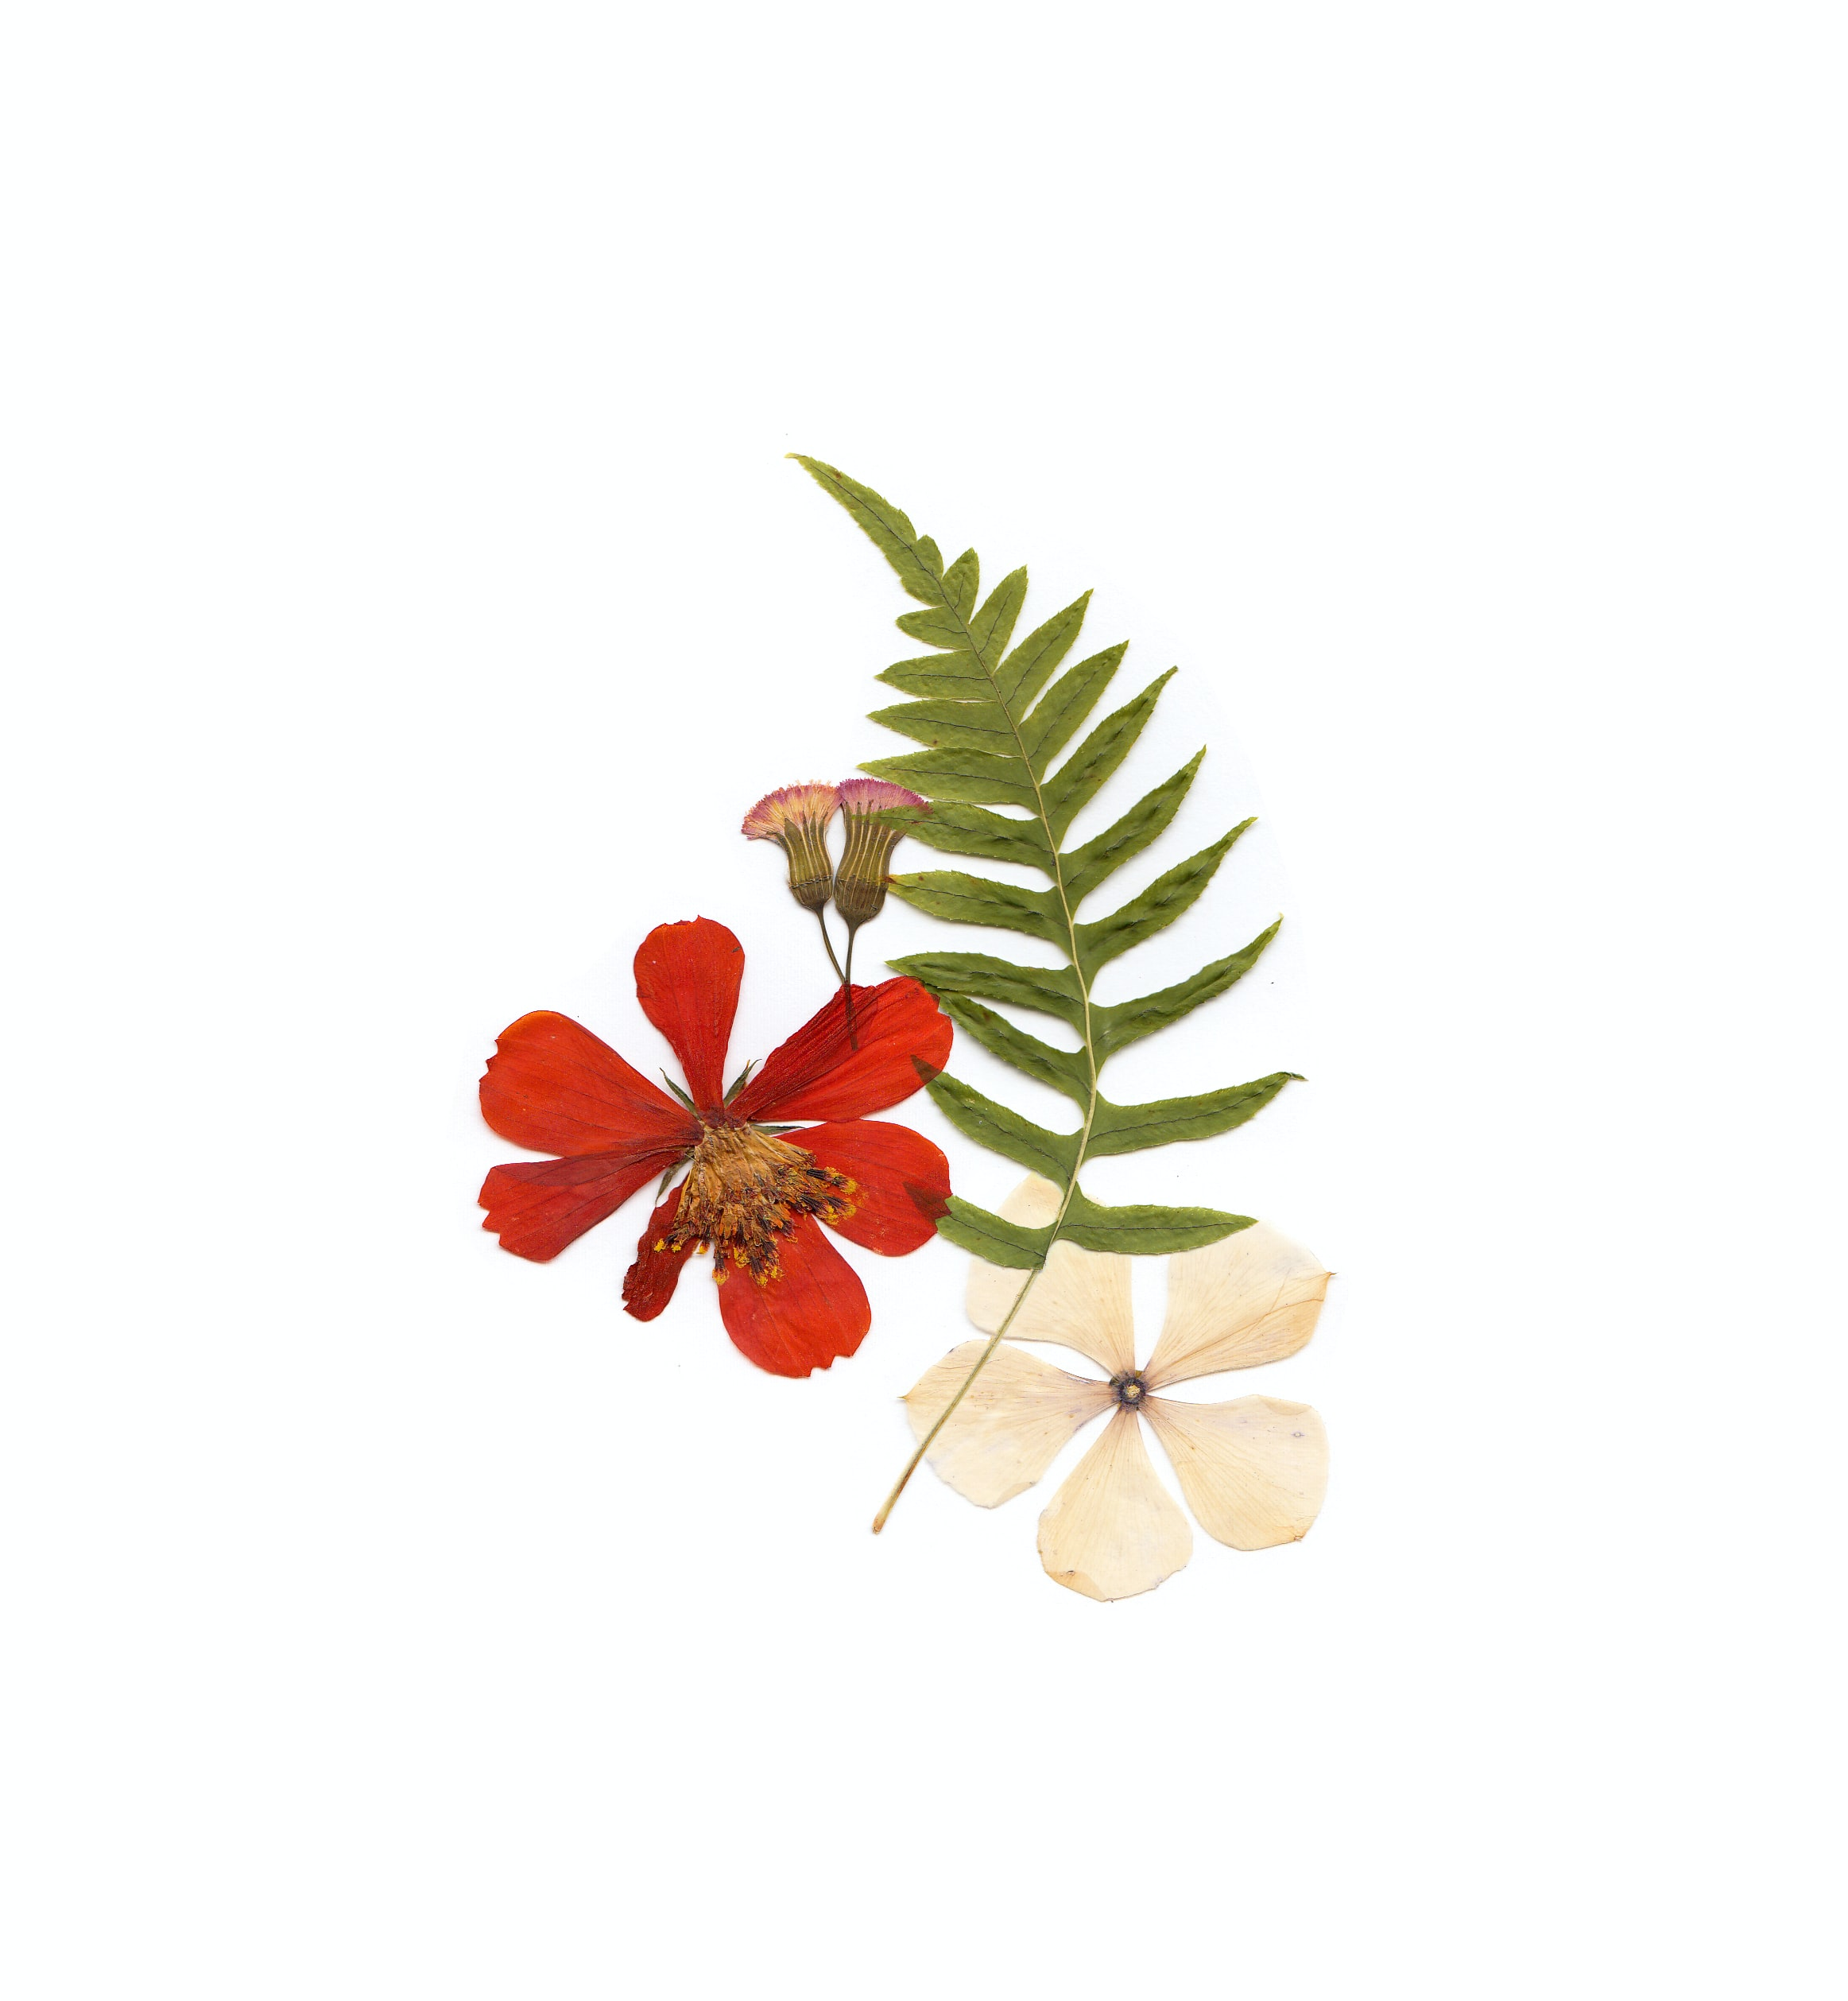 green fern, white flower, and red flower on white surface